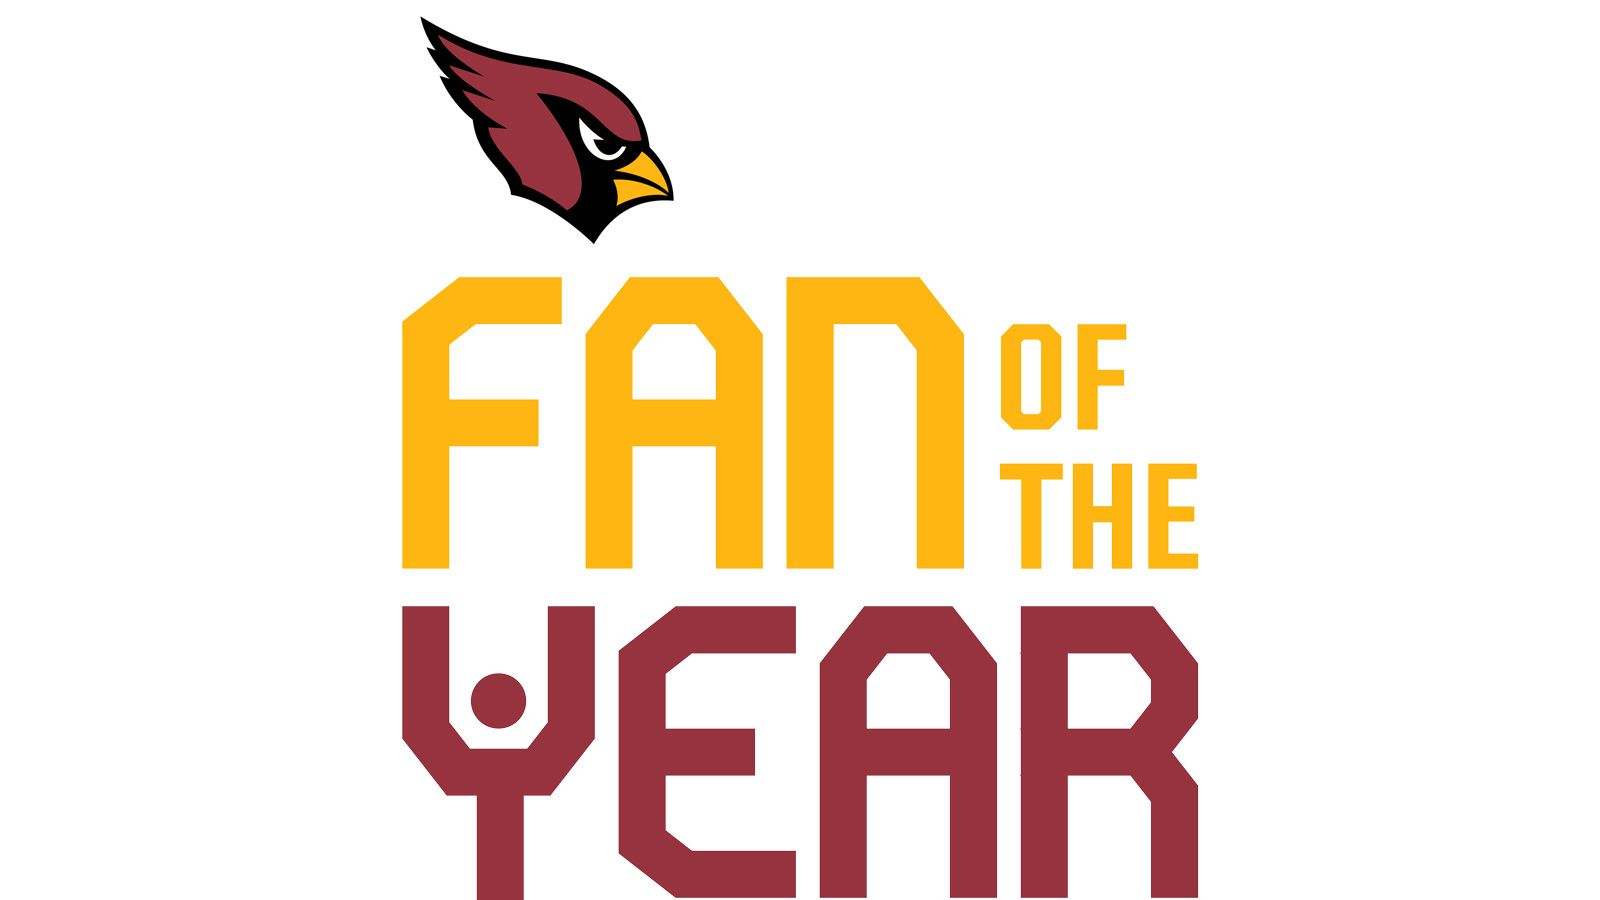 Fan Of The Year 2020 Contest Image